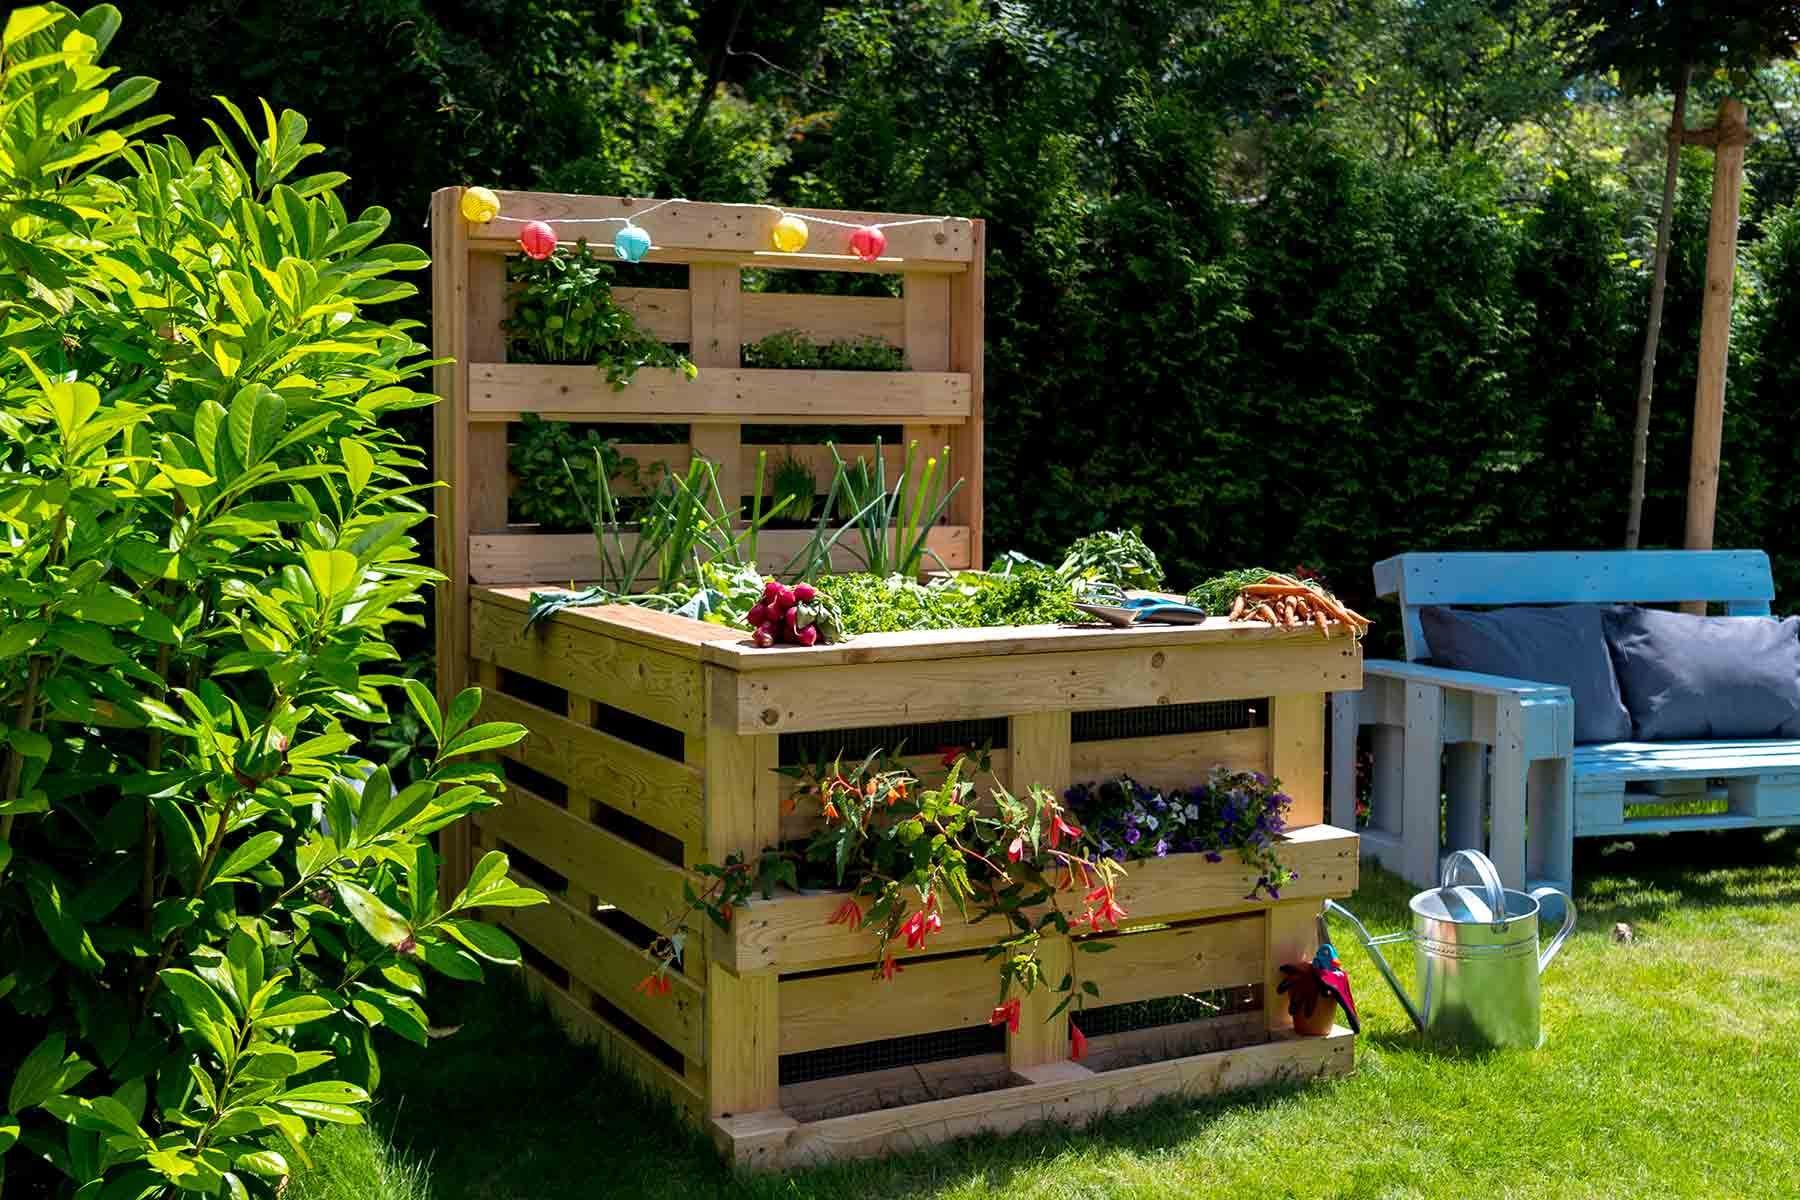 Build Pallet Raised Bed Yourself All Furniture Create By Obi In 2020 Pallet Projects Garden Pallet Garden Furniture Pallet Furniture Outdoor